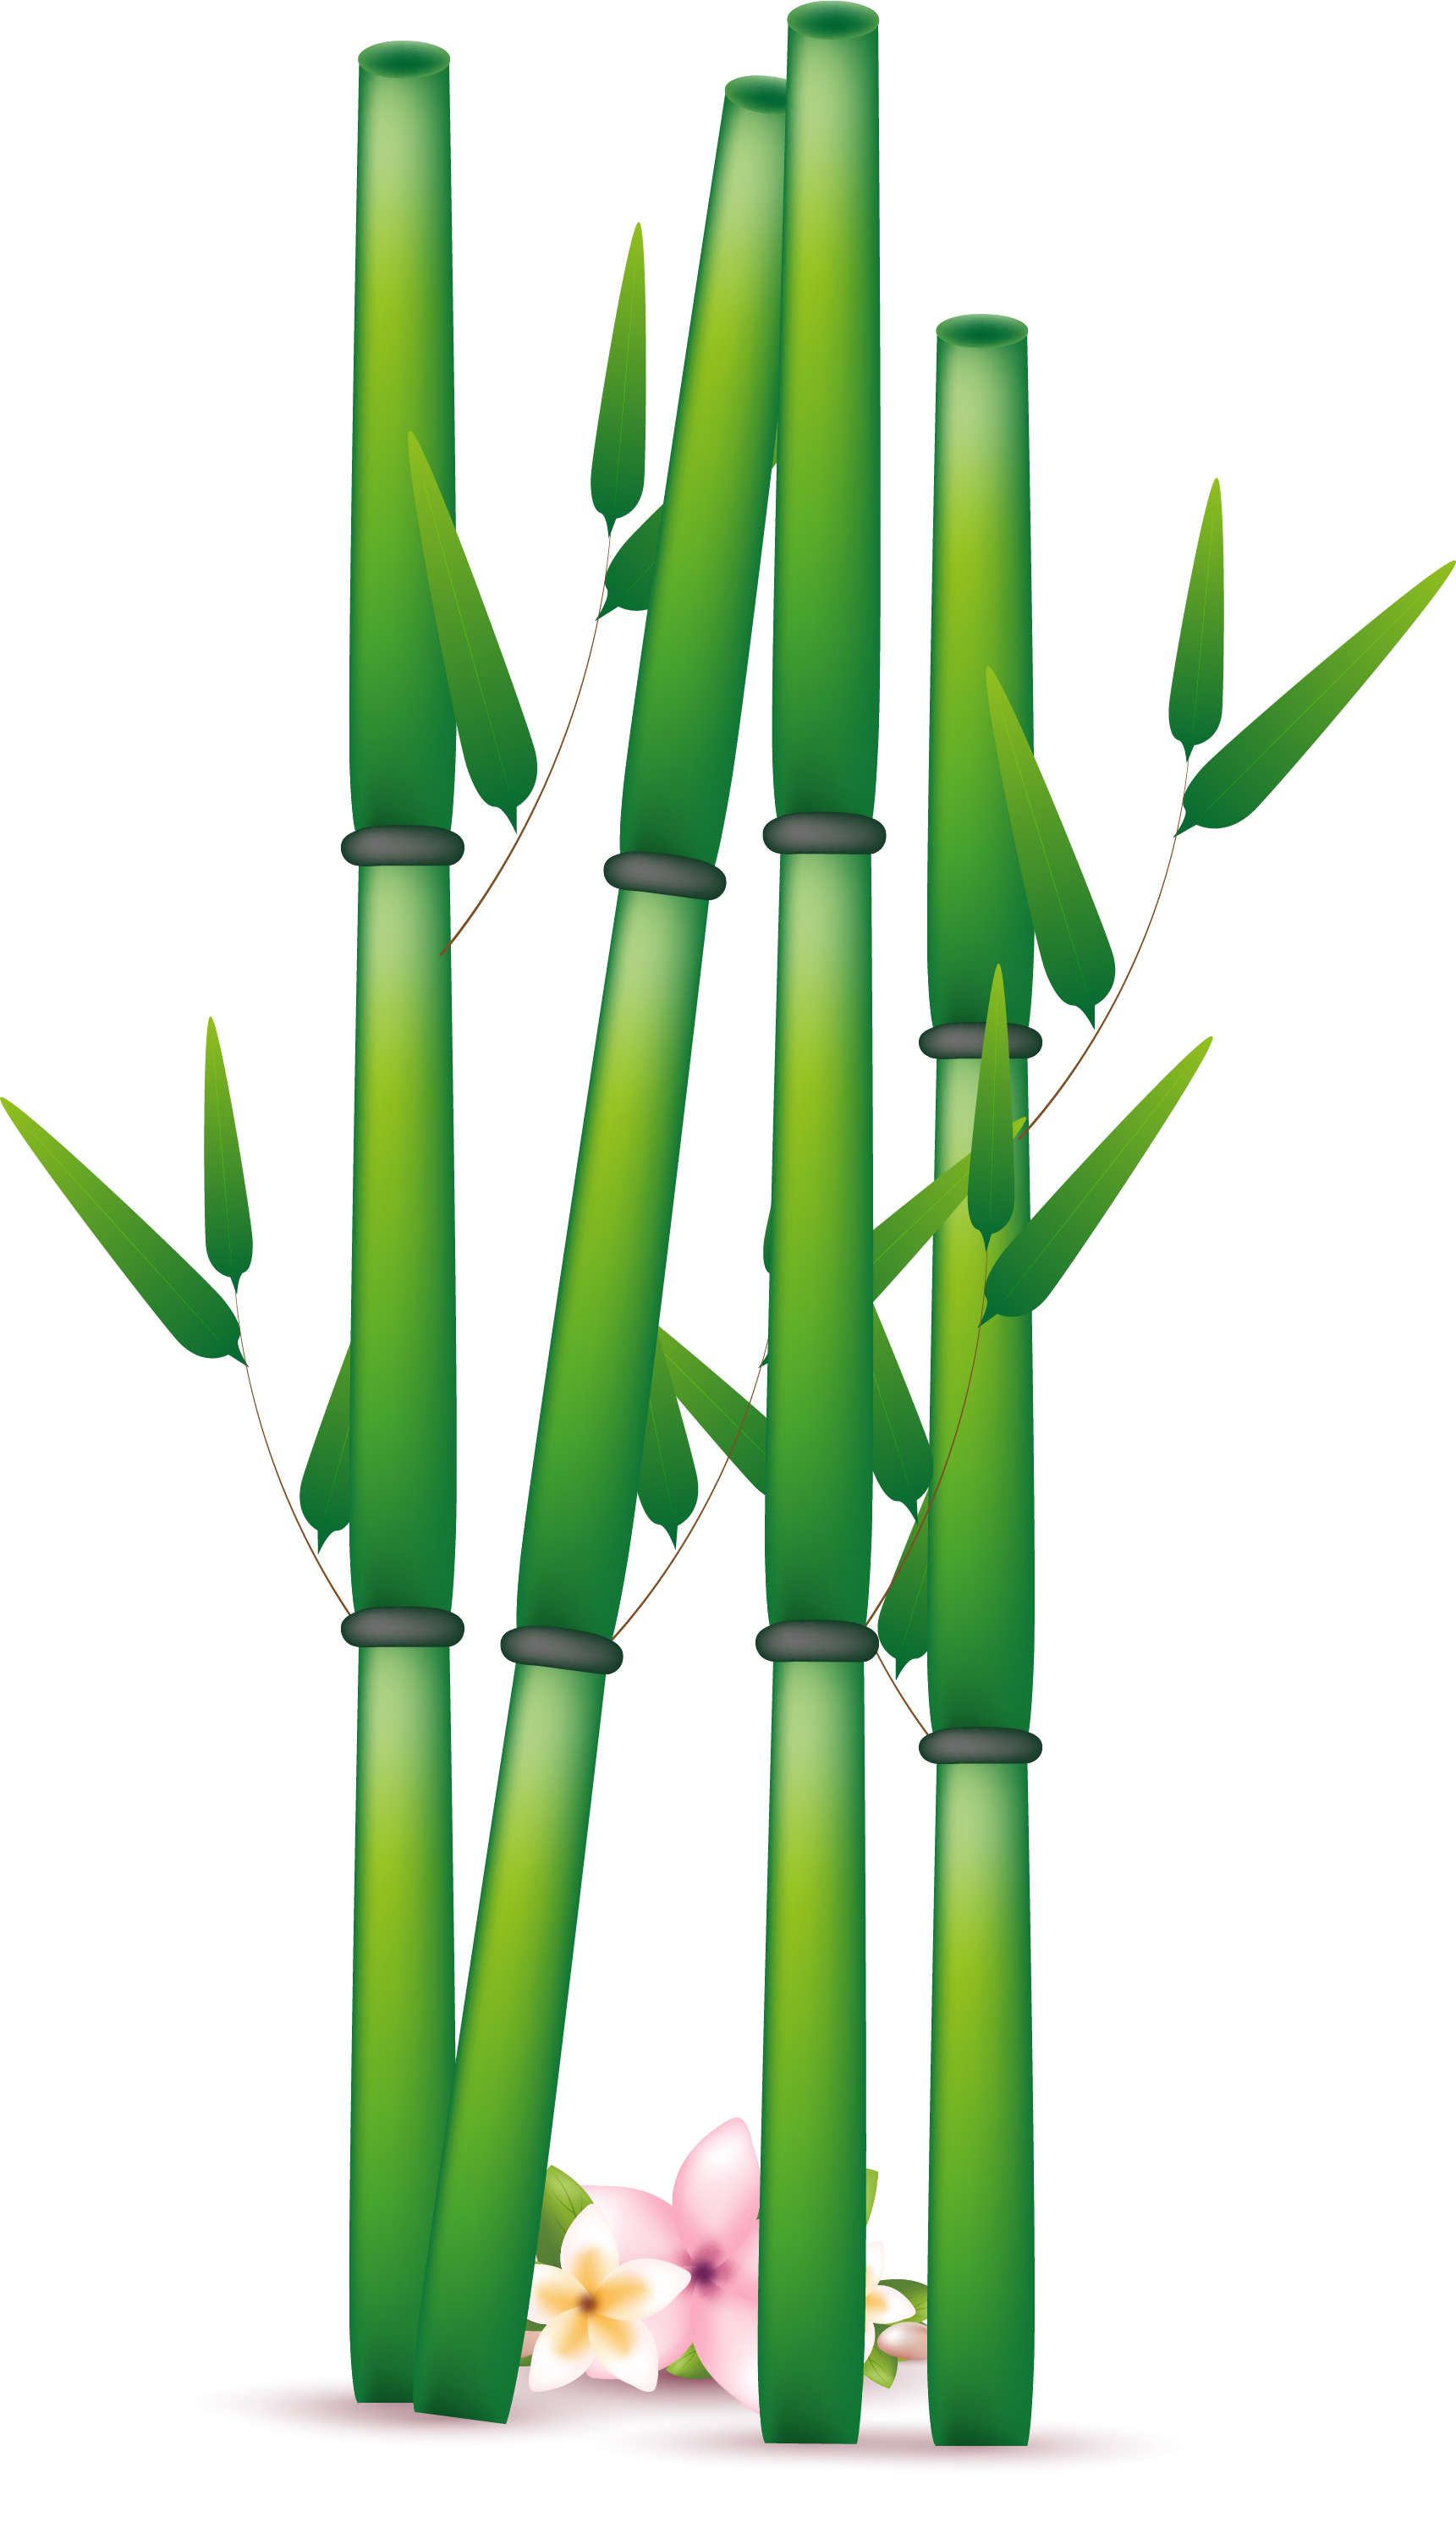 Png transparent free images. Bamboo clipart